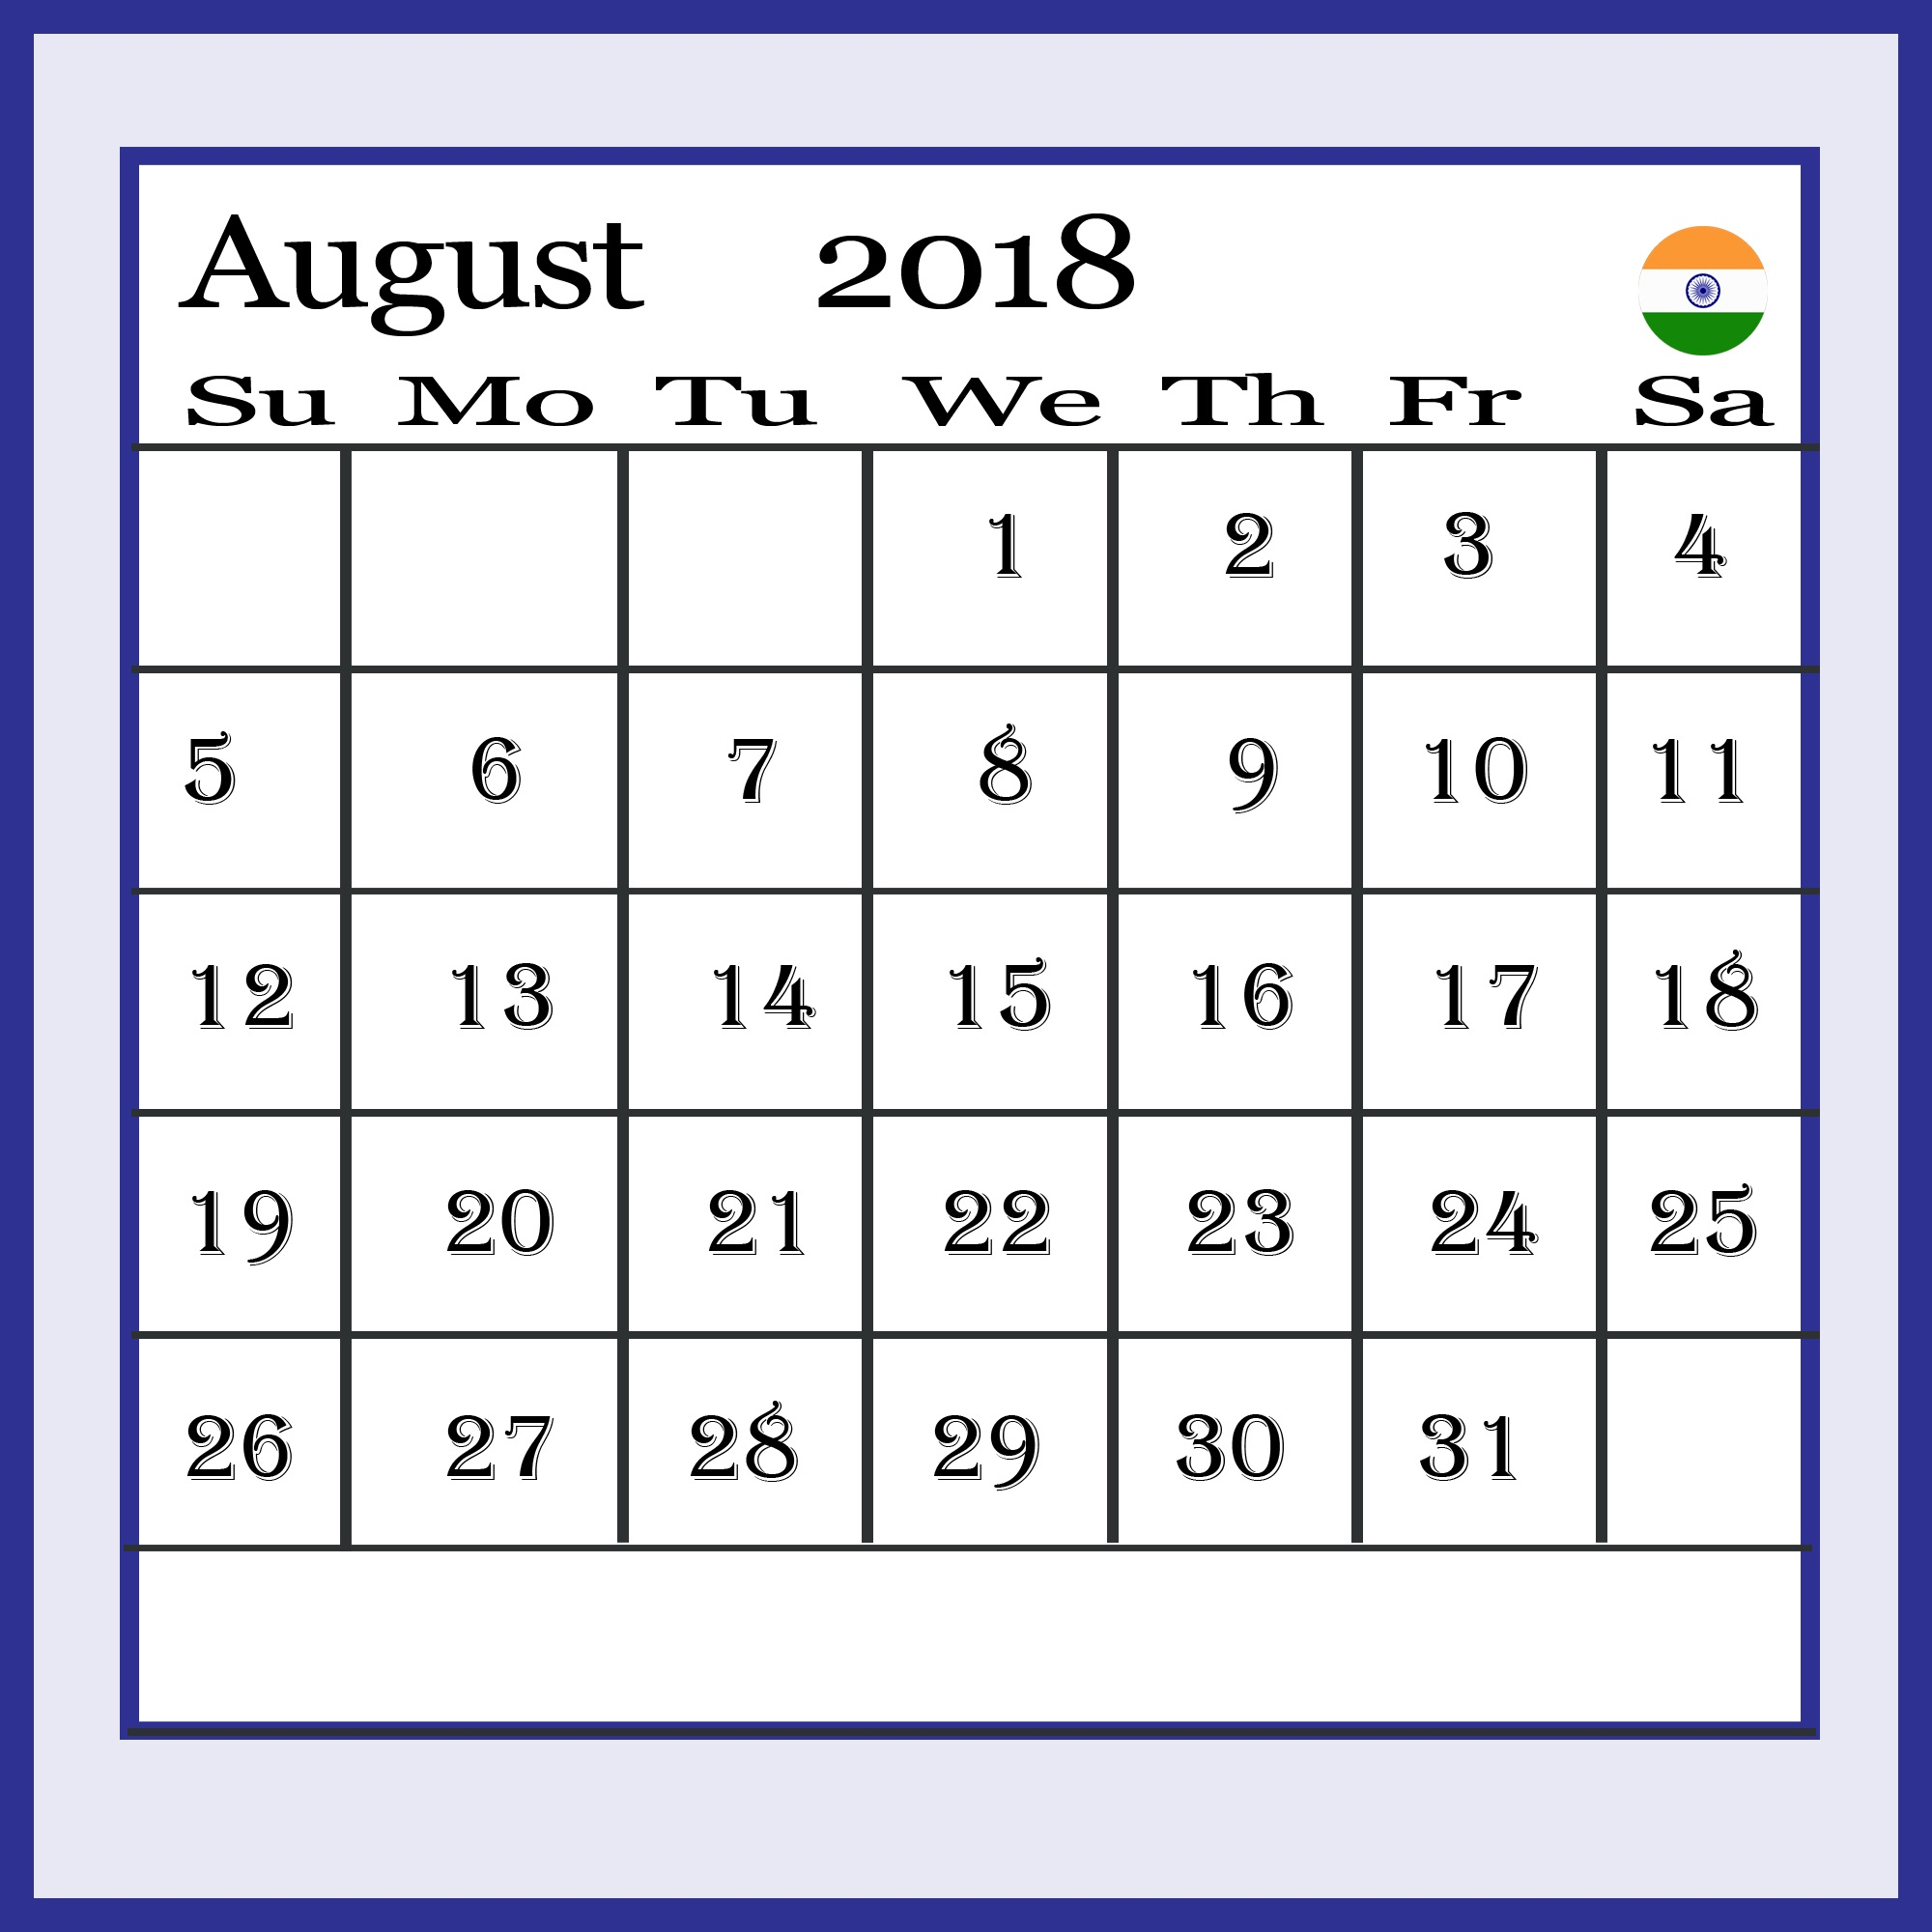 August 2018 Calendar India Holidays and Festivals